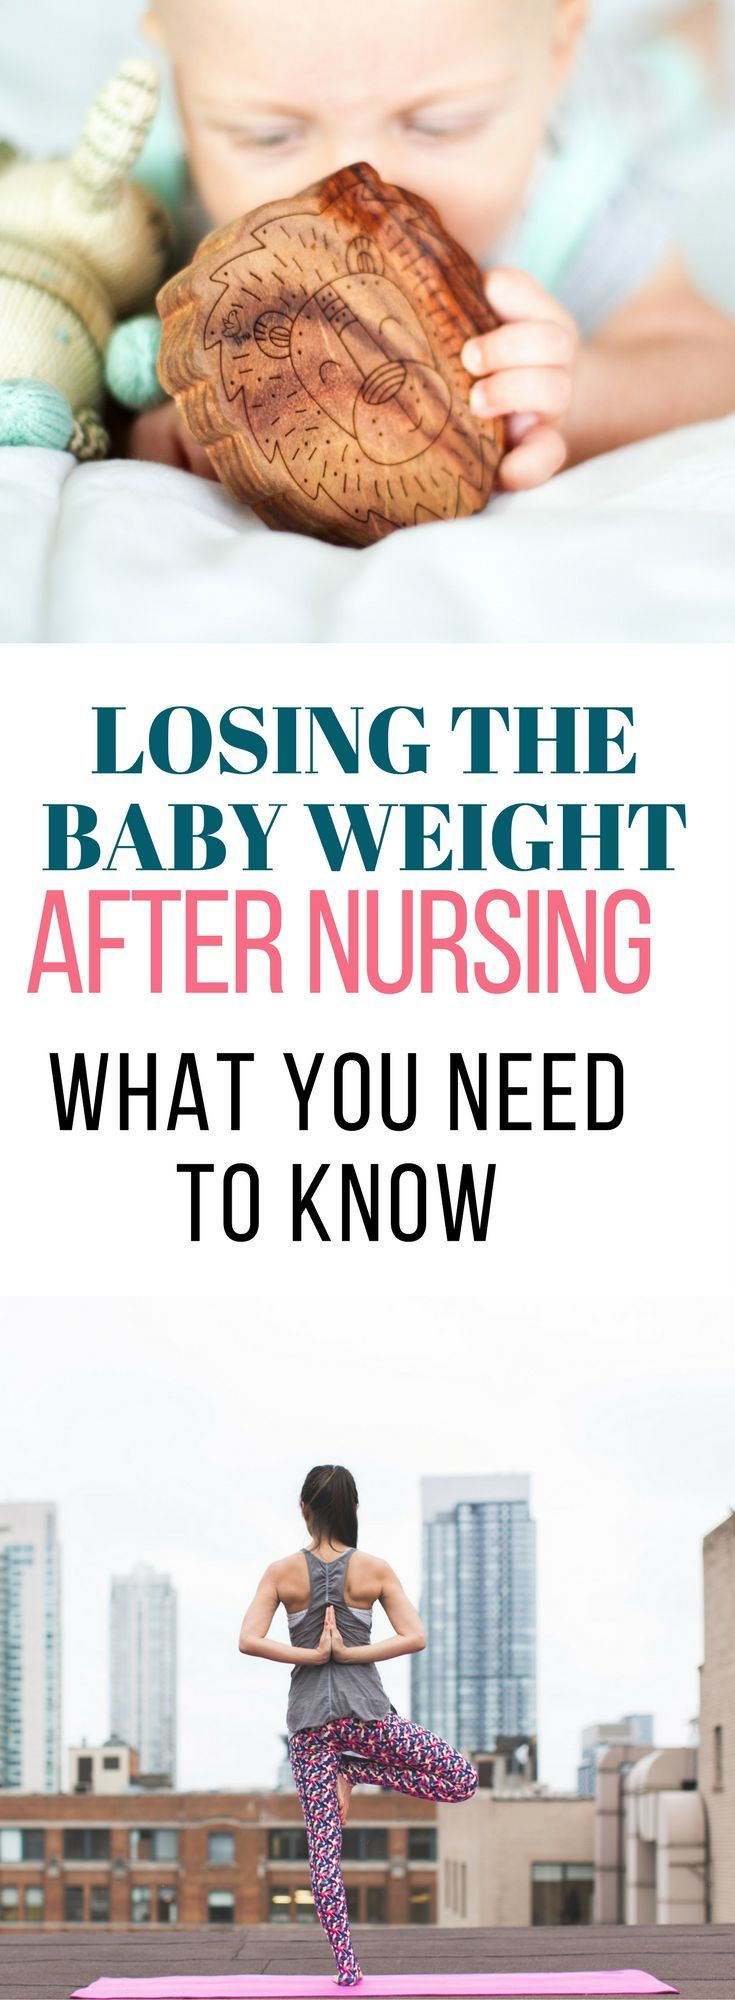 Losing the baby weight after nursing is a whole different story. Once you've weaned your baby, there are some important things you need to know to keep losing the baby weight.